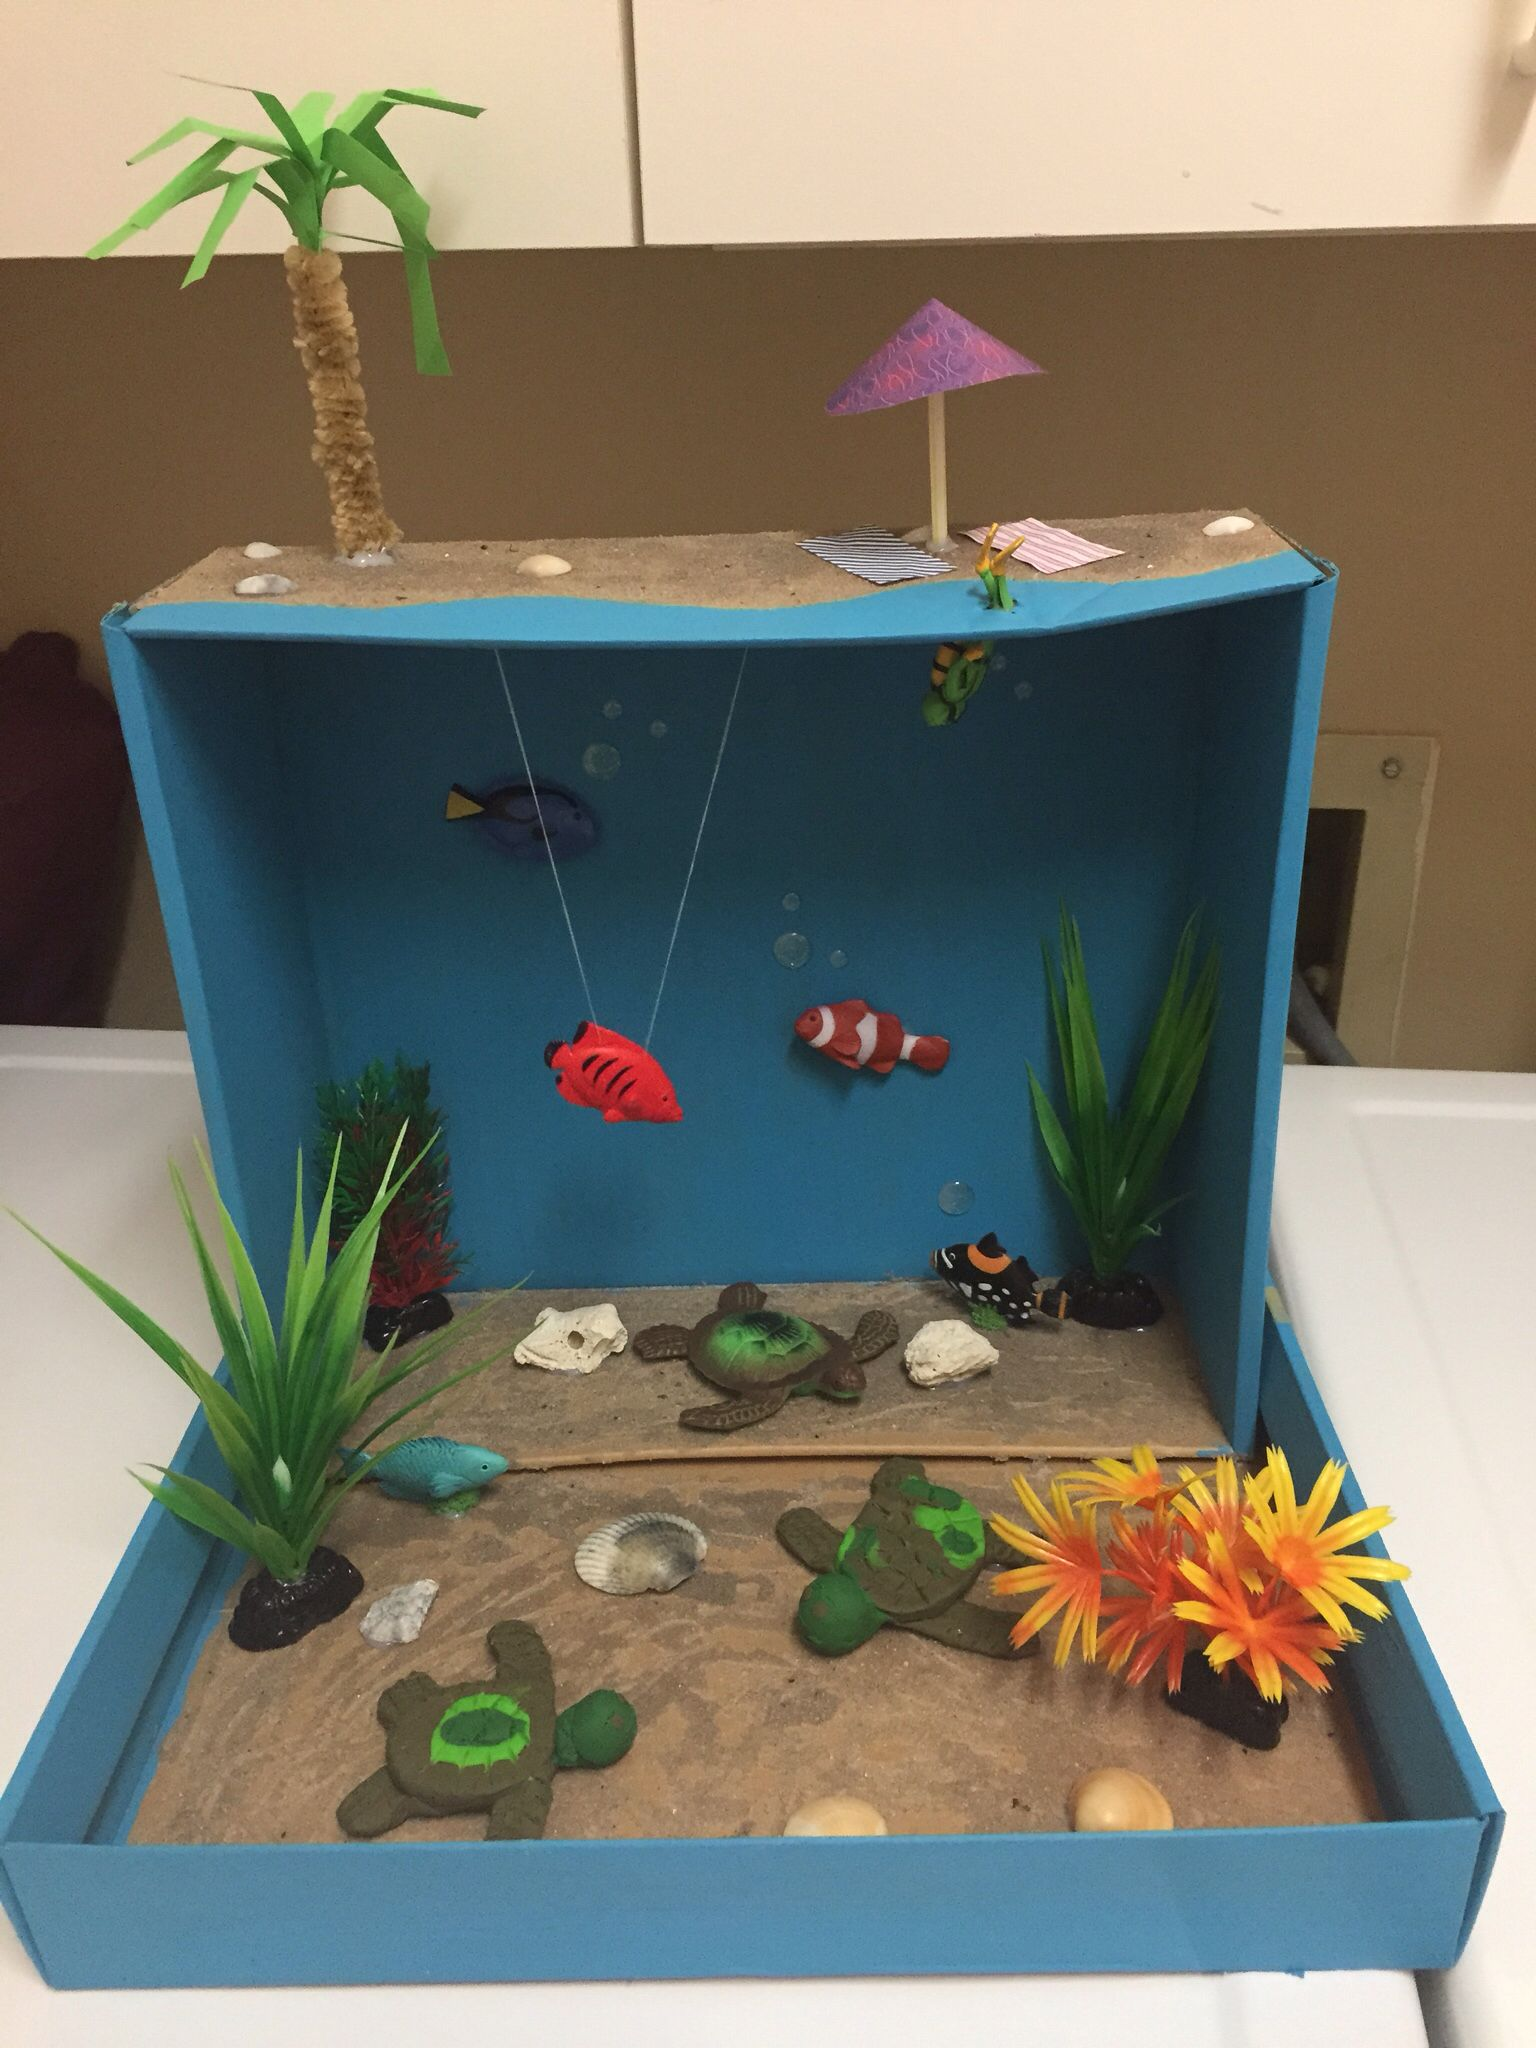 Coral reef diorama w loggerhead turtles diorama pinterest coral reef diorama w loggerhead turtles sciox Image collections